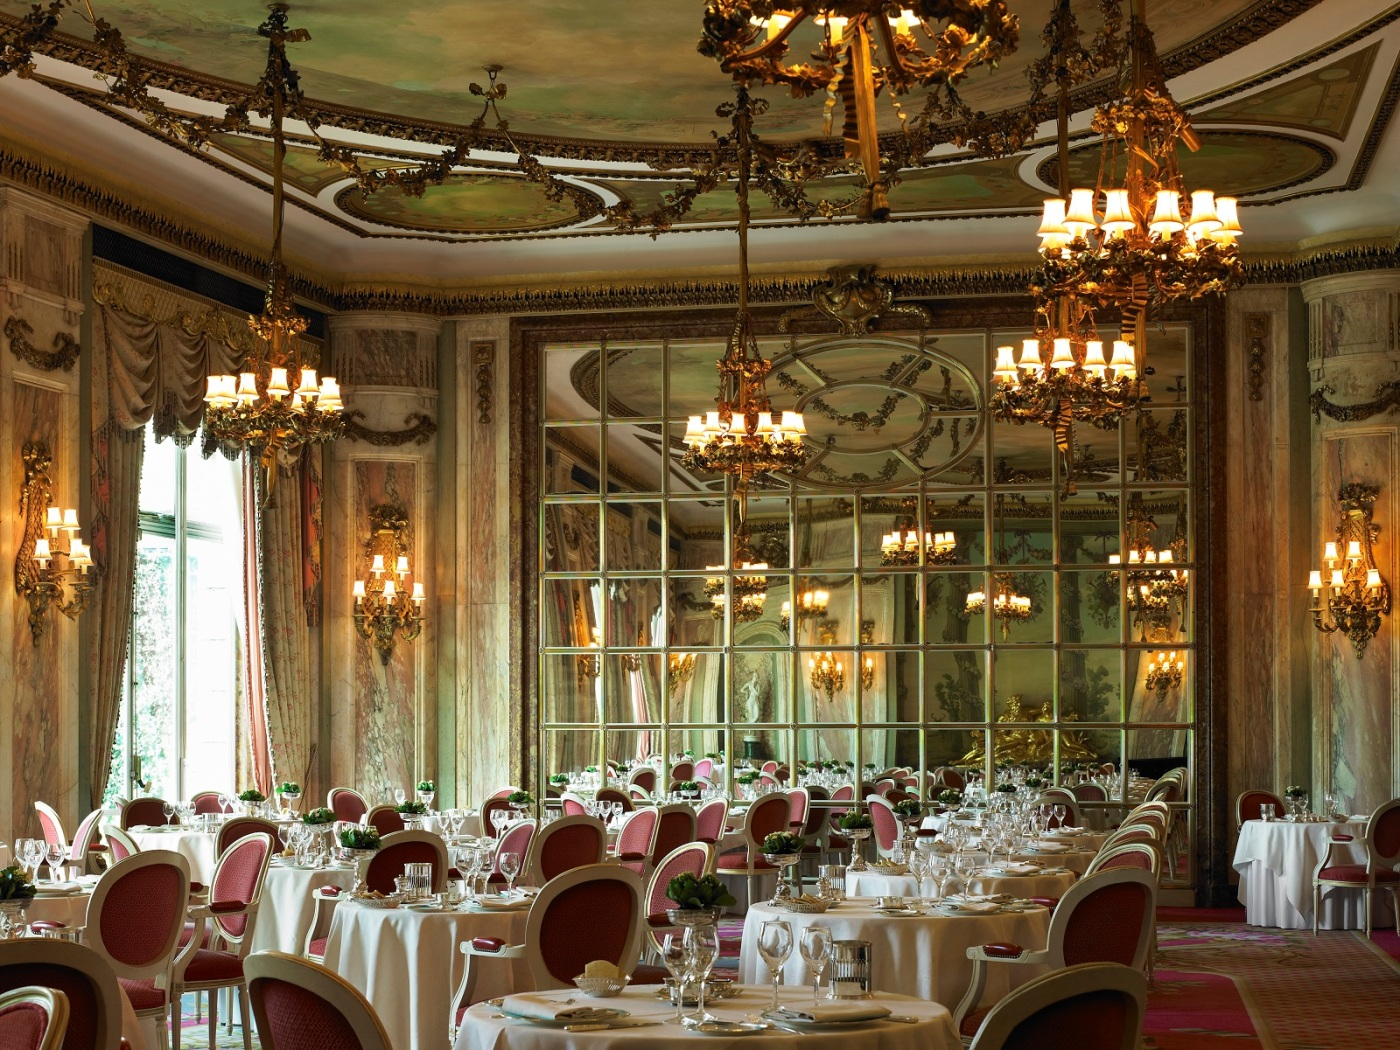 The Ritz Restaurant 9